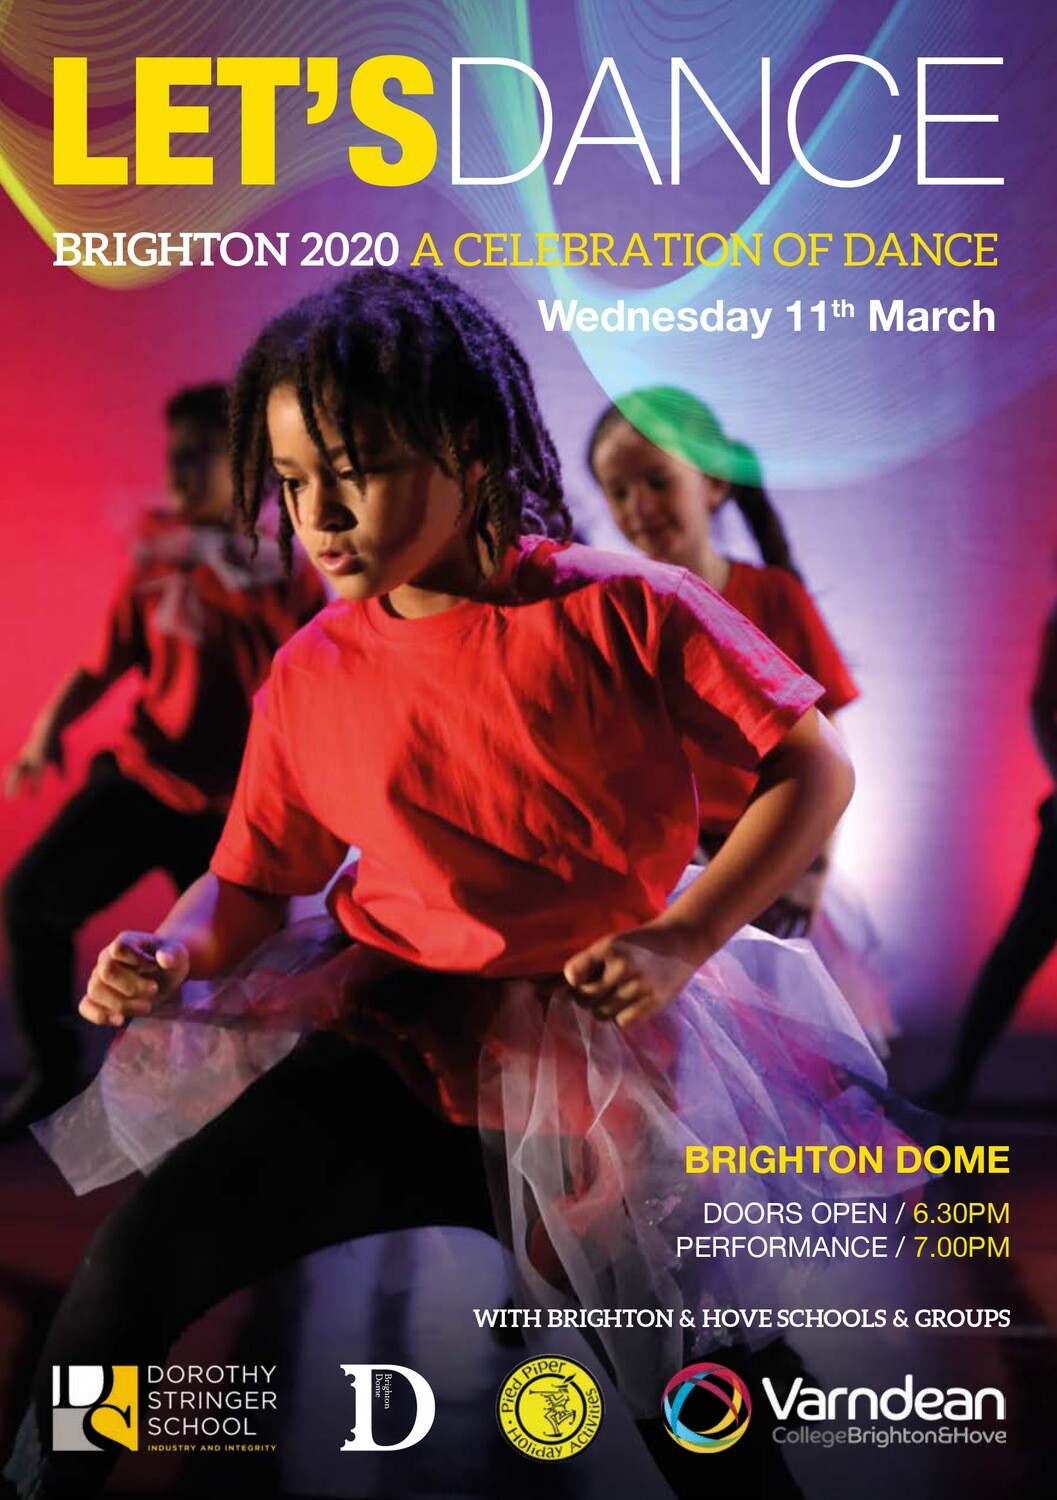 LETS DANCE WEDNESDAY 11th MARCH 2020 BLU RAY DVD (HD)